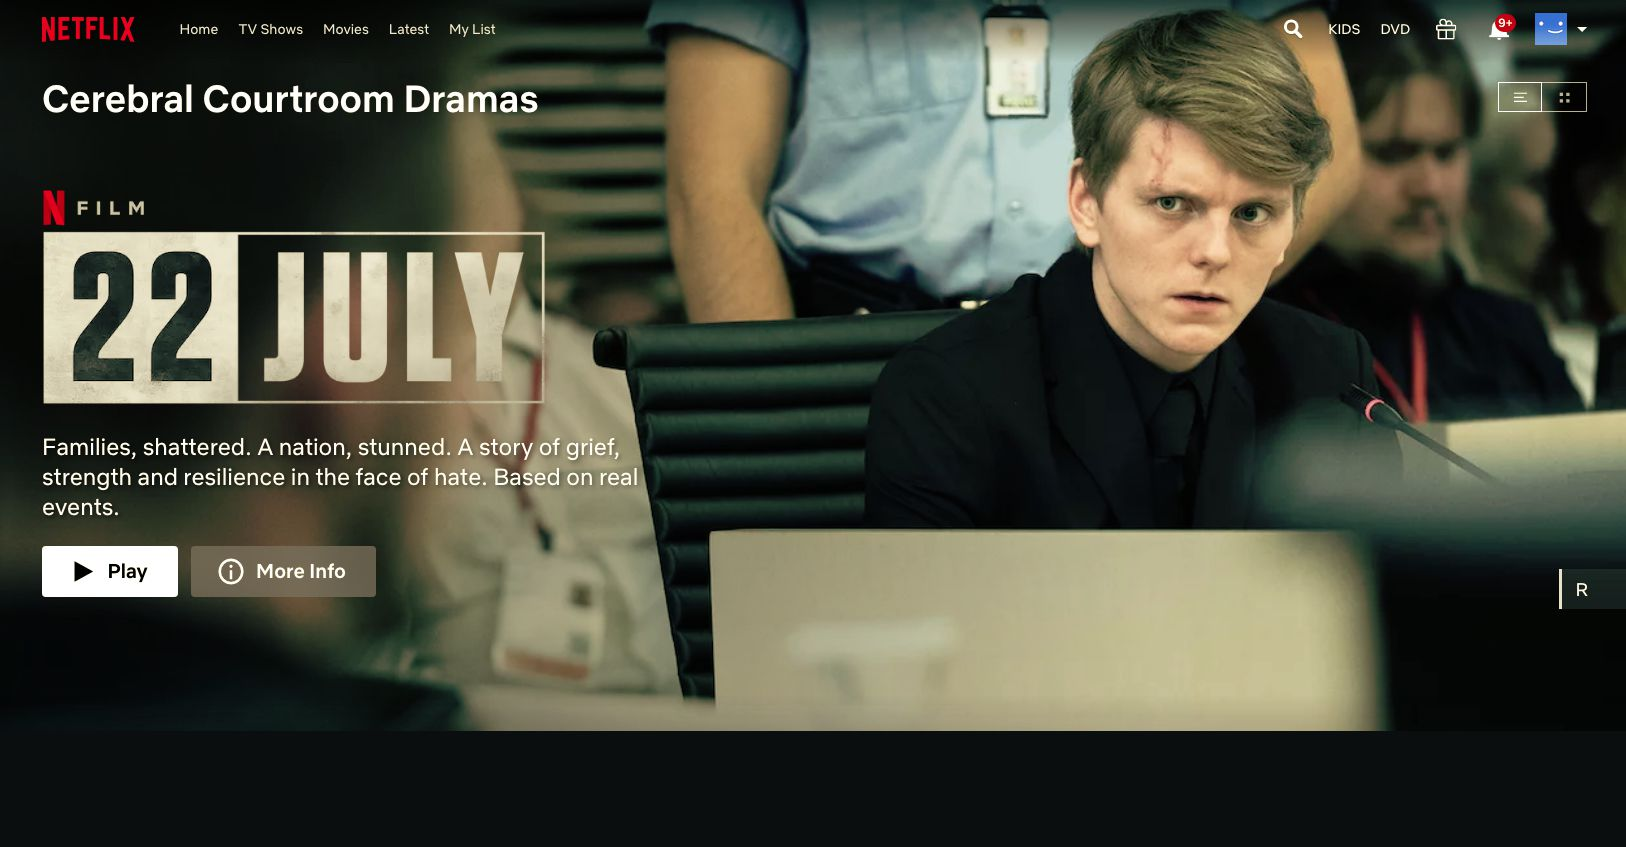 Netflix secret codes for courtroom drama movies like 22 July